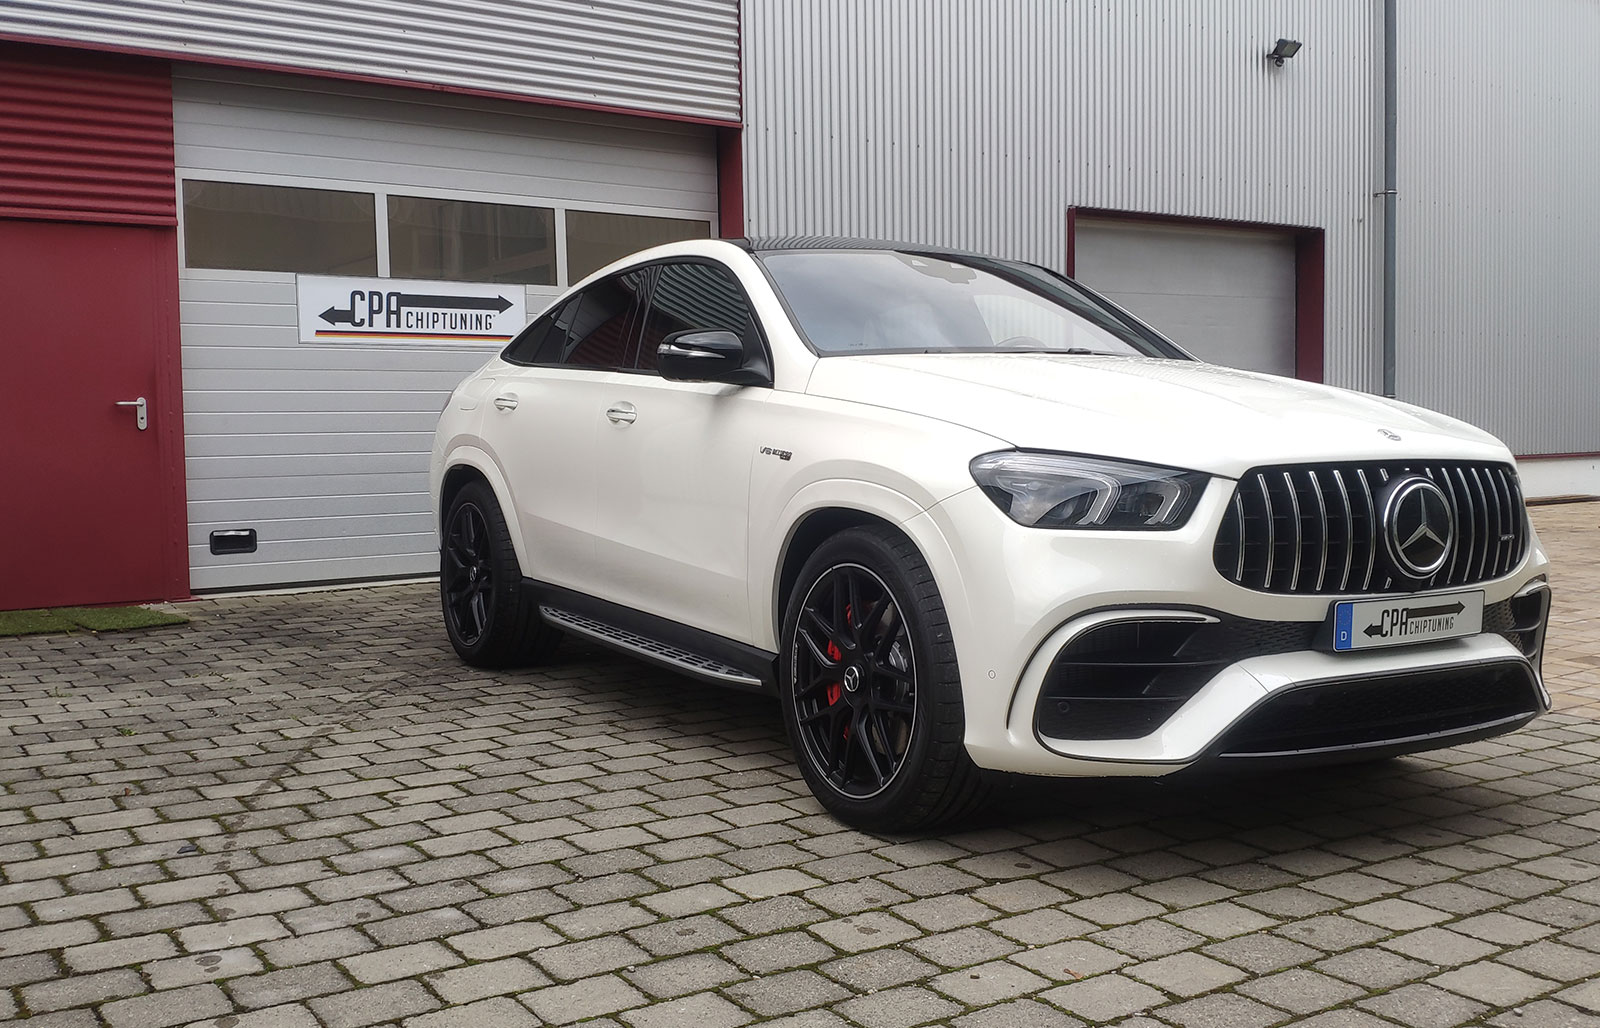 Mercedes GLE-Class (C167) GLE63 S AMG 4MATIC+ coupé chiptuning